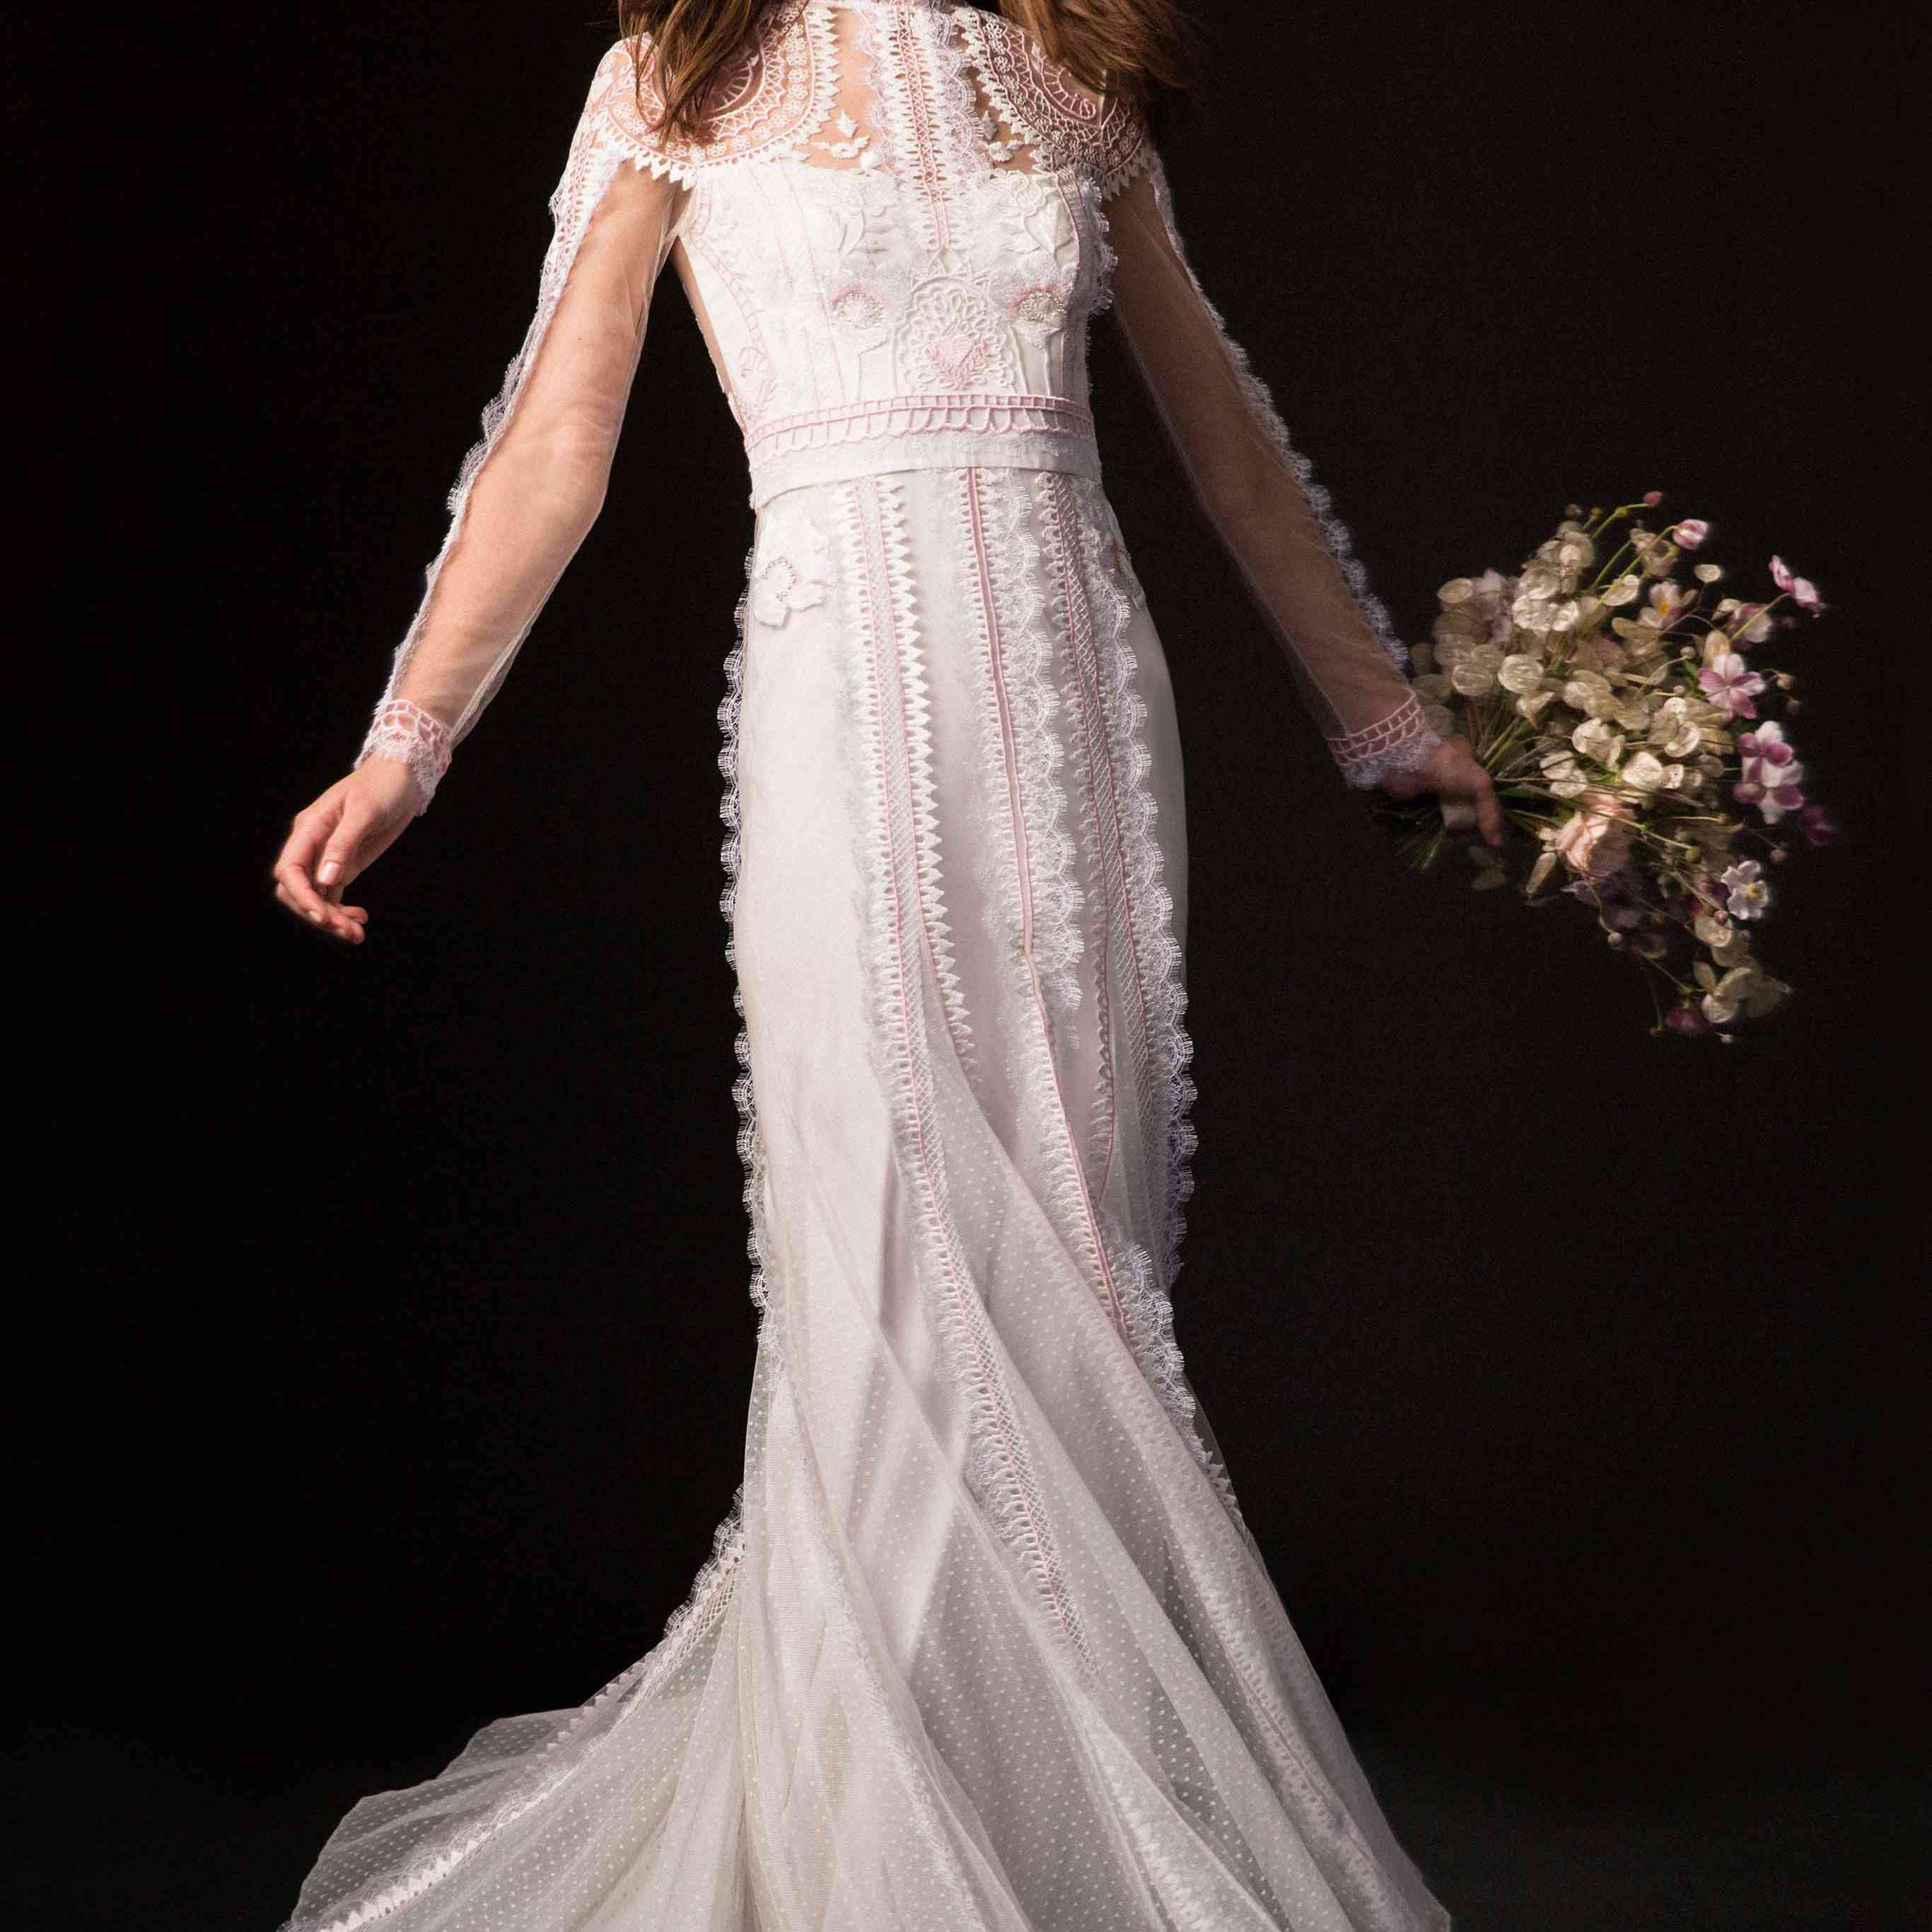 Model in long-sleeve, high-neck gown with pink and white lace embroidery